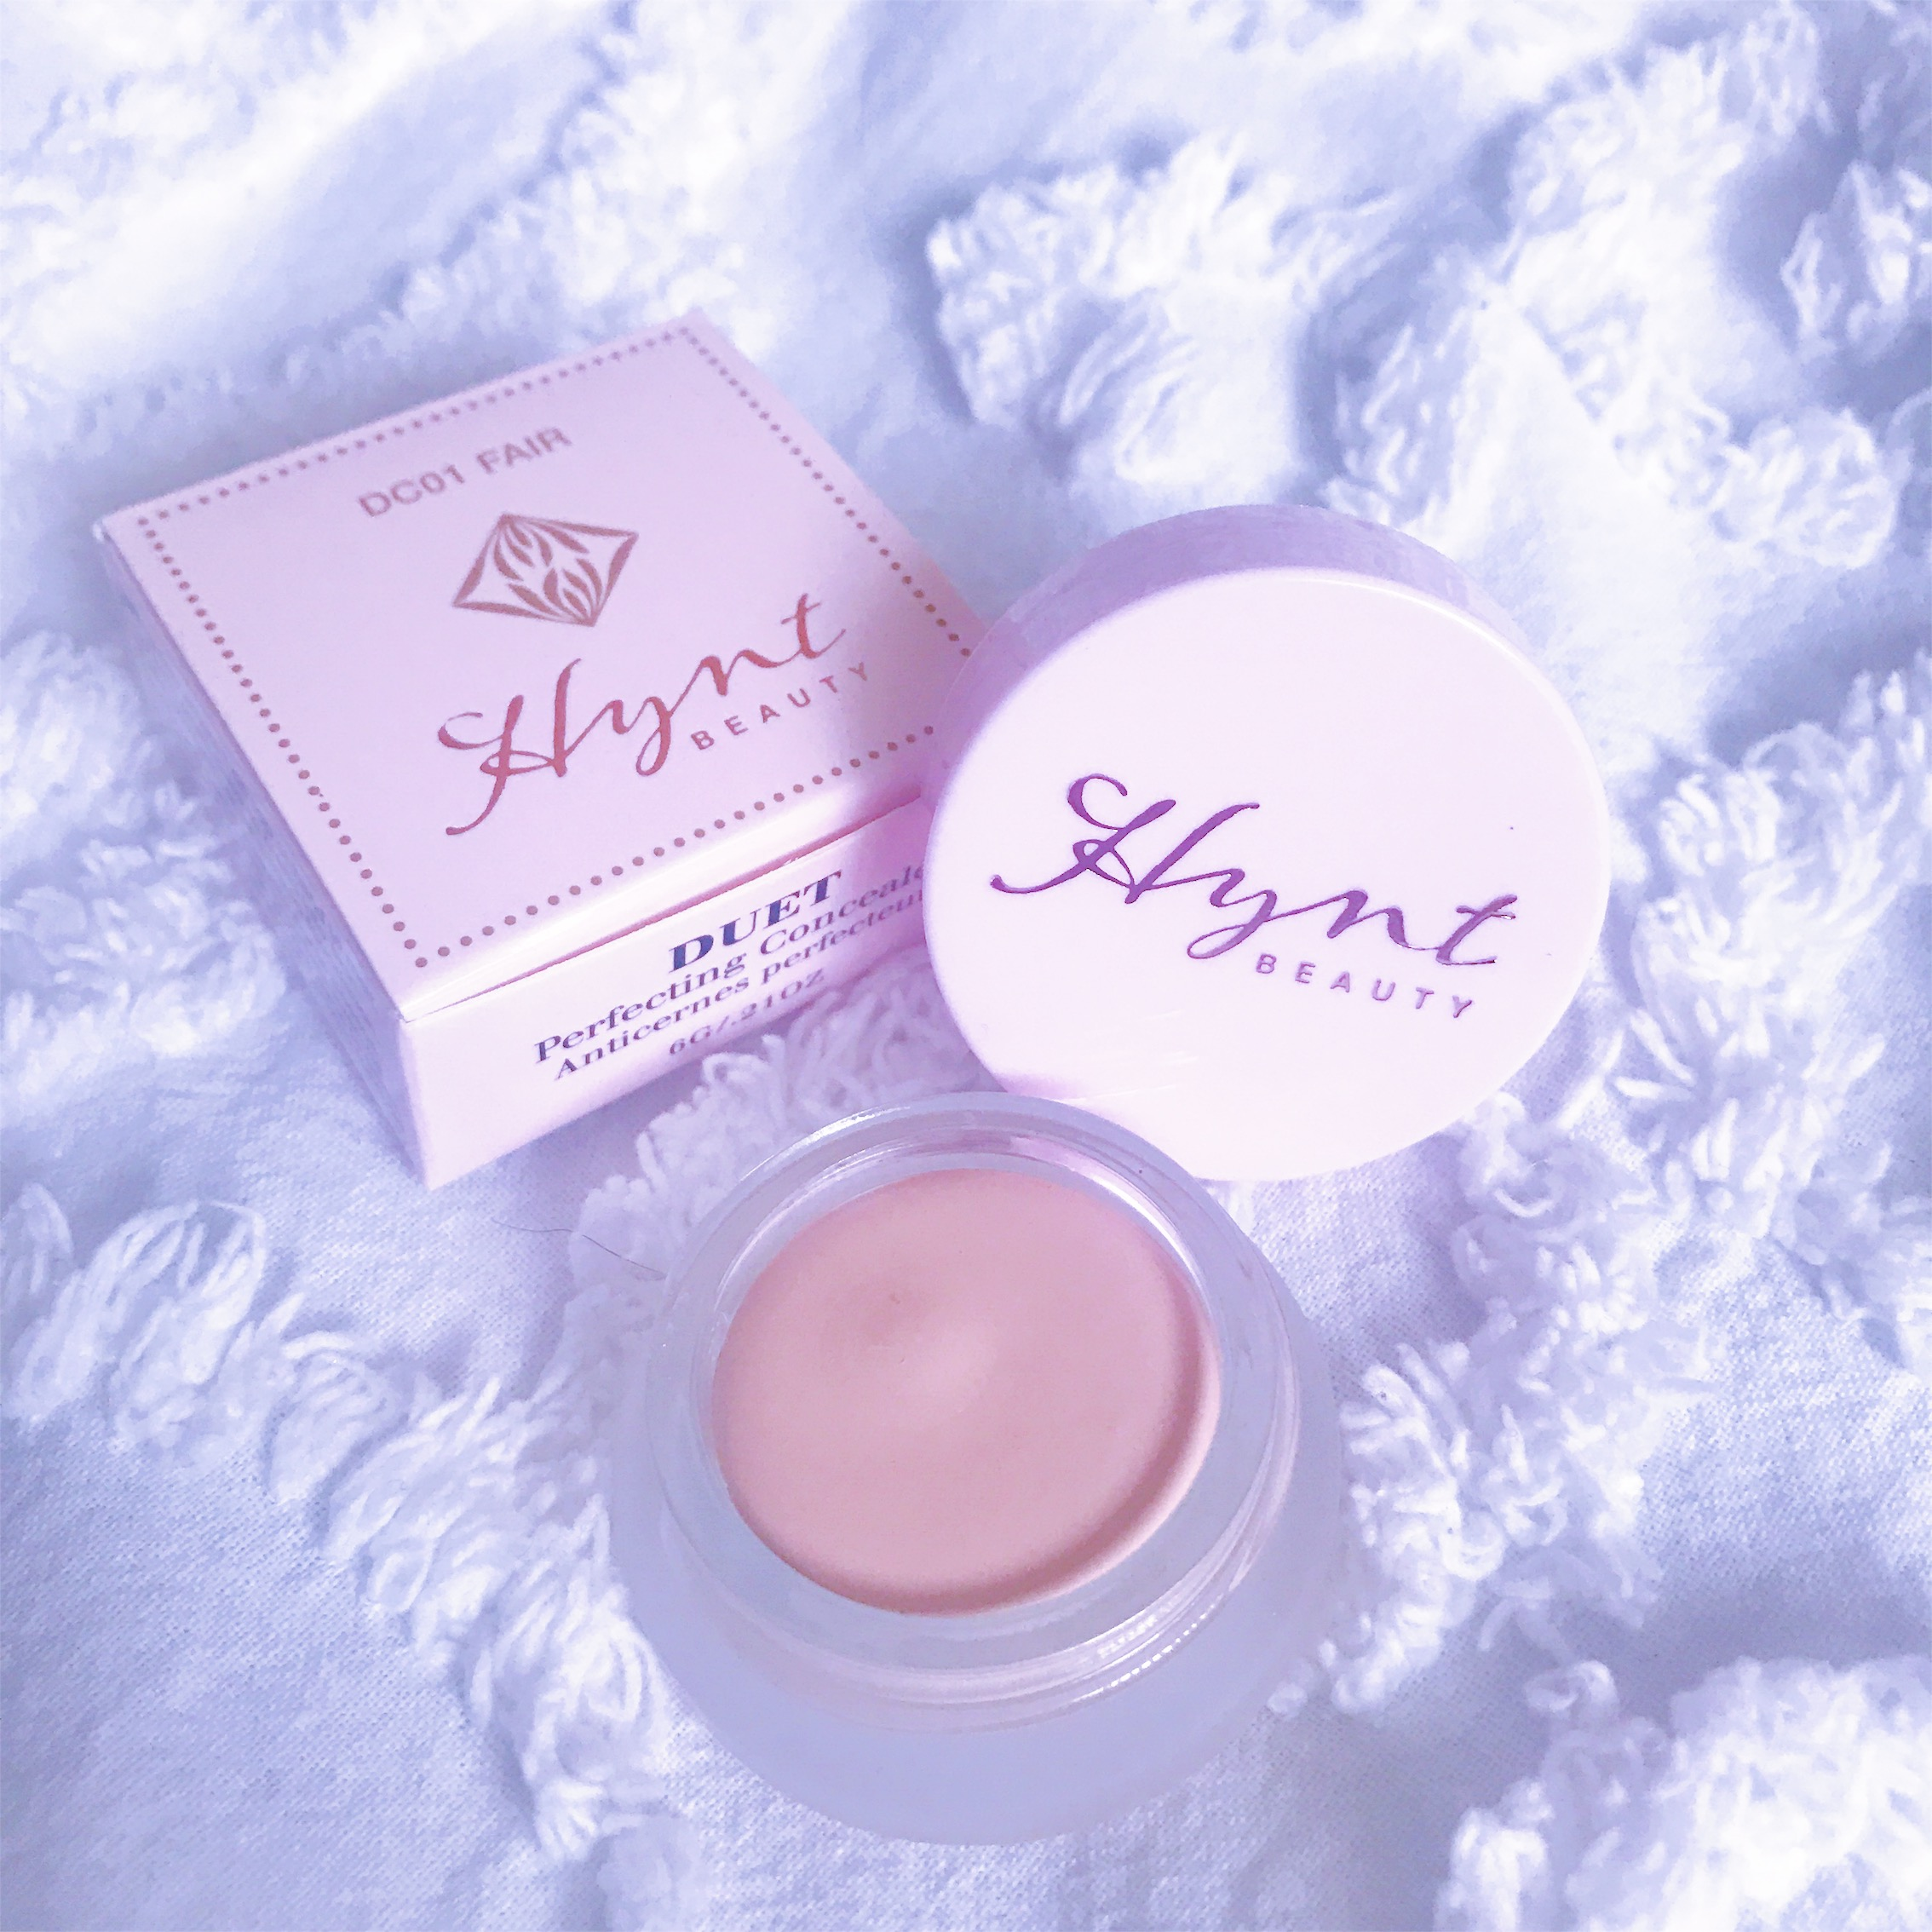 Hynt Beauty Concealer